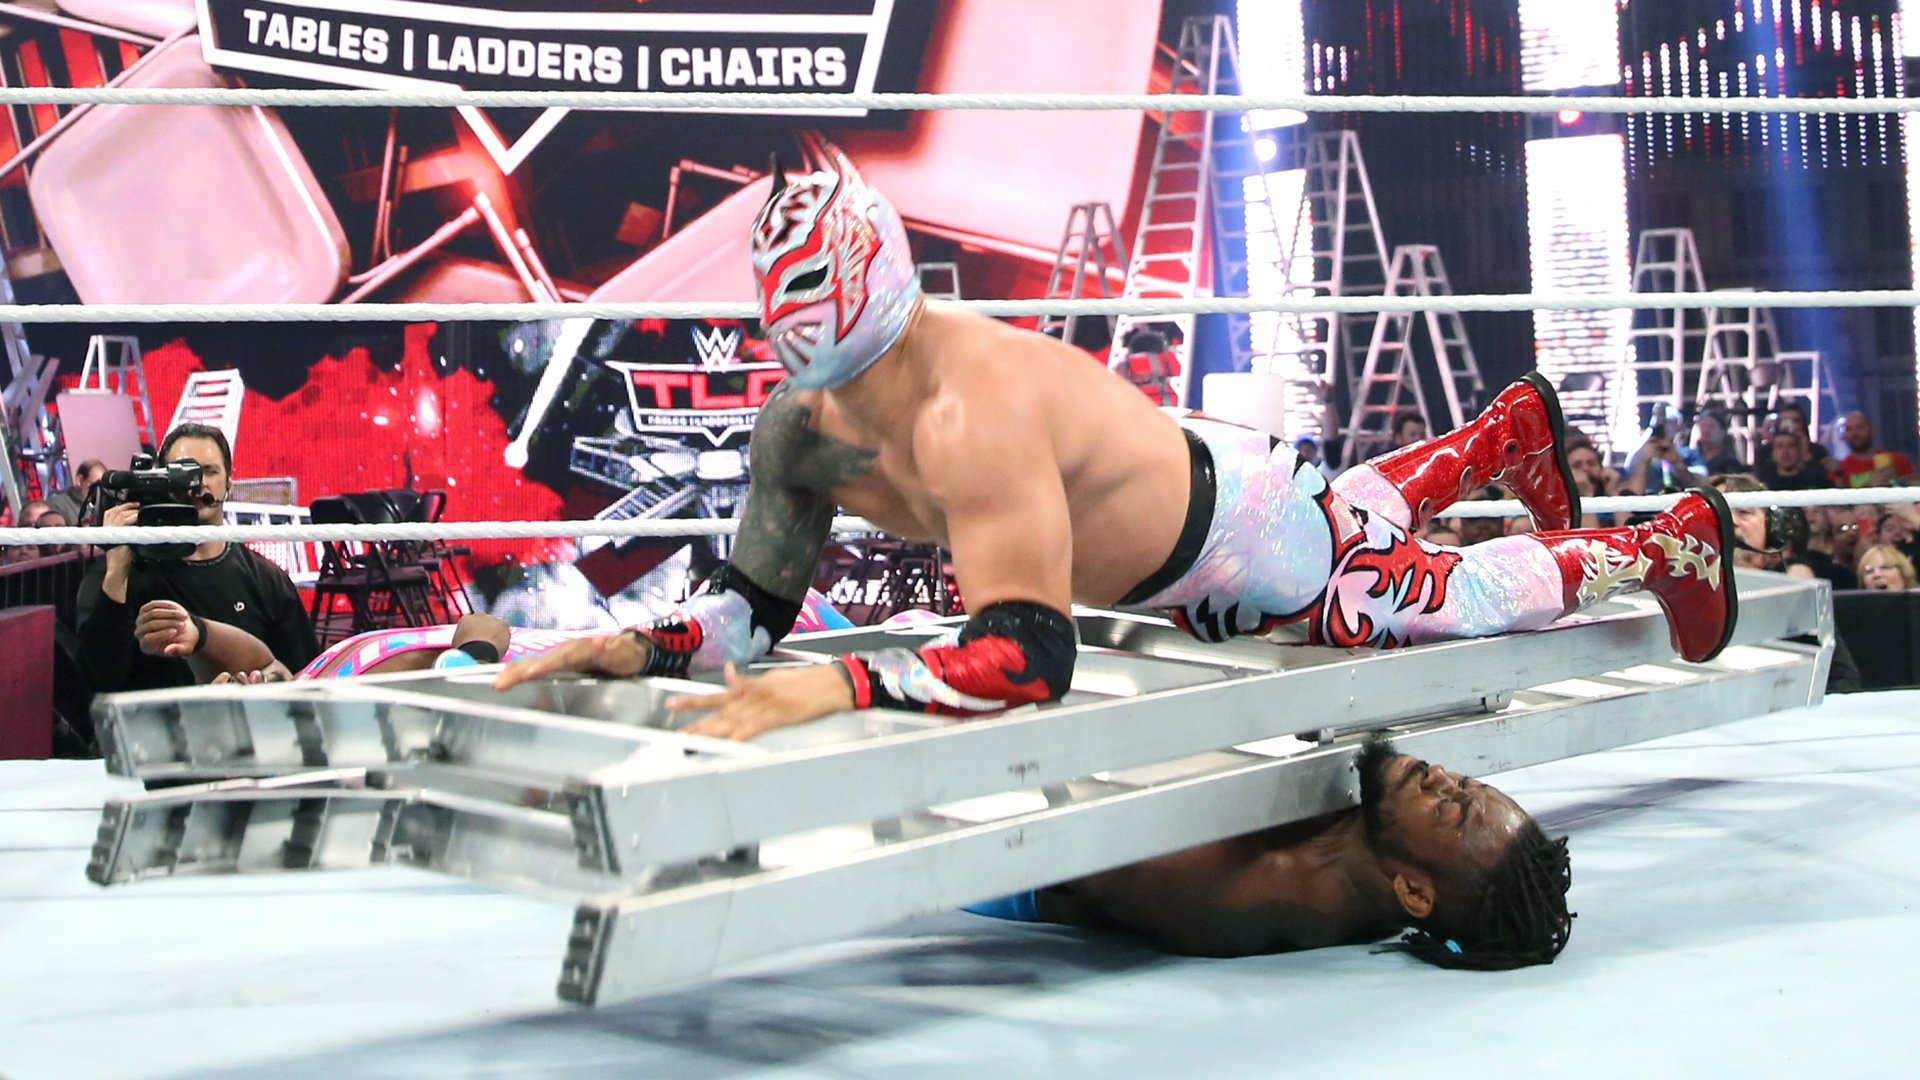 Sin Cara squashes Kofi Kingston with a wince-inducing ladder collision.